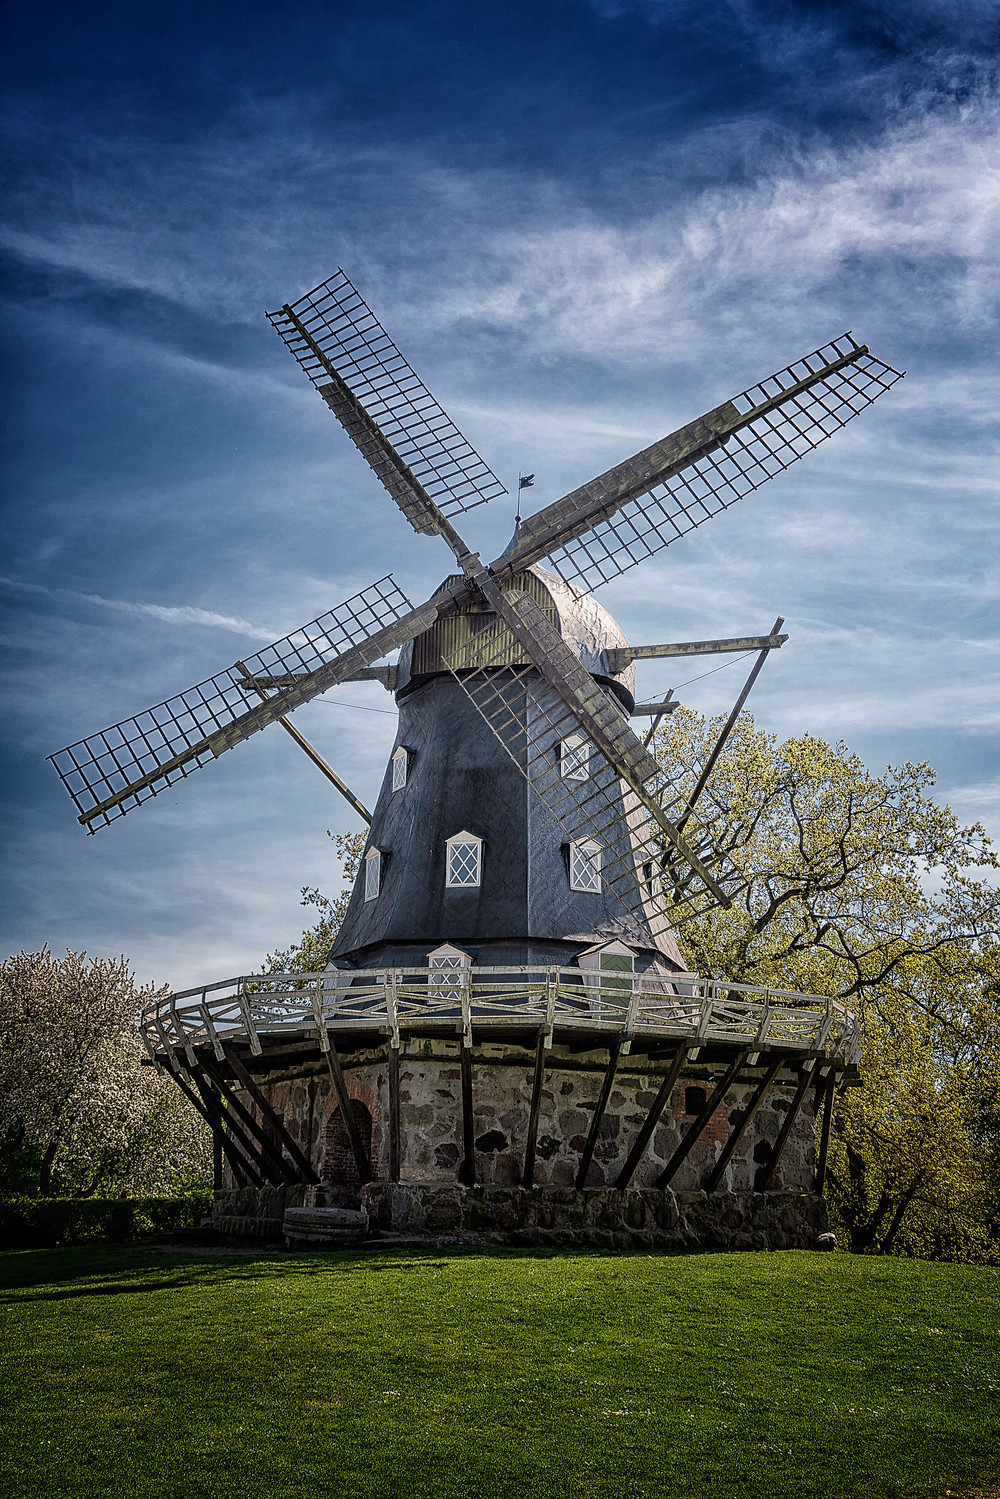 No other windmills I've seen can compare to this one